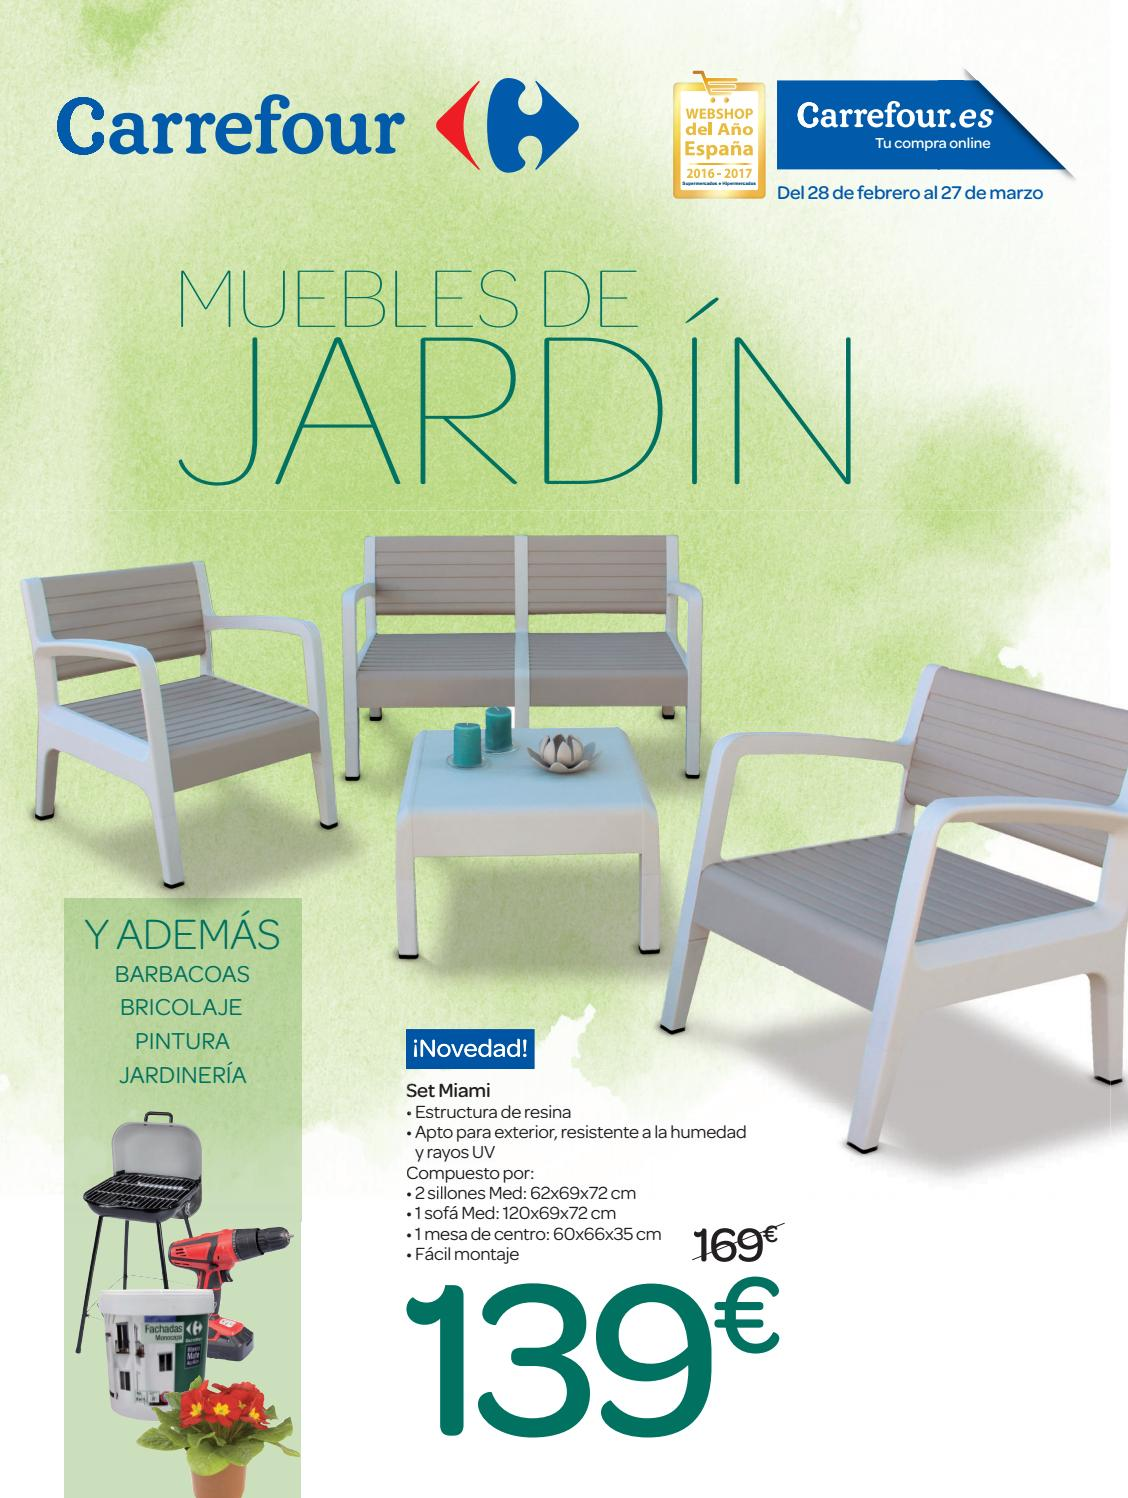 Muebles de jardin carrefour by ofertas supermercados issuu for Muebles de jardin de resina